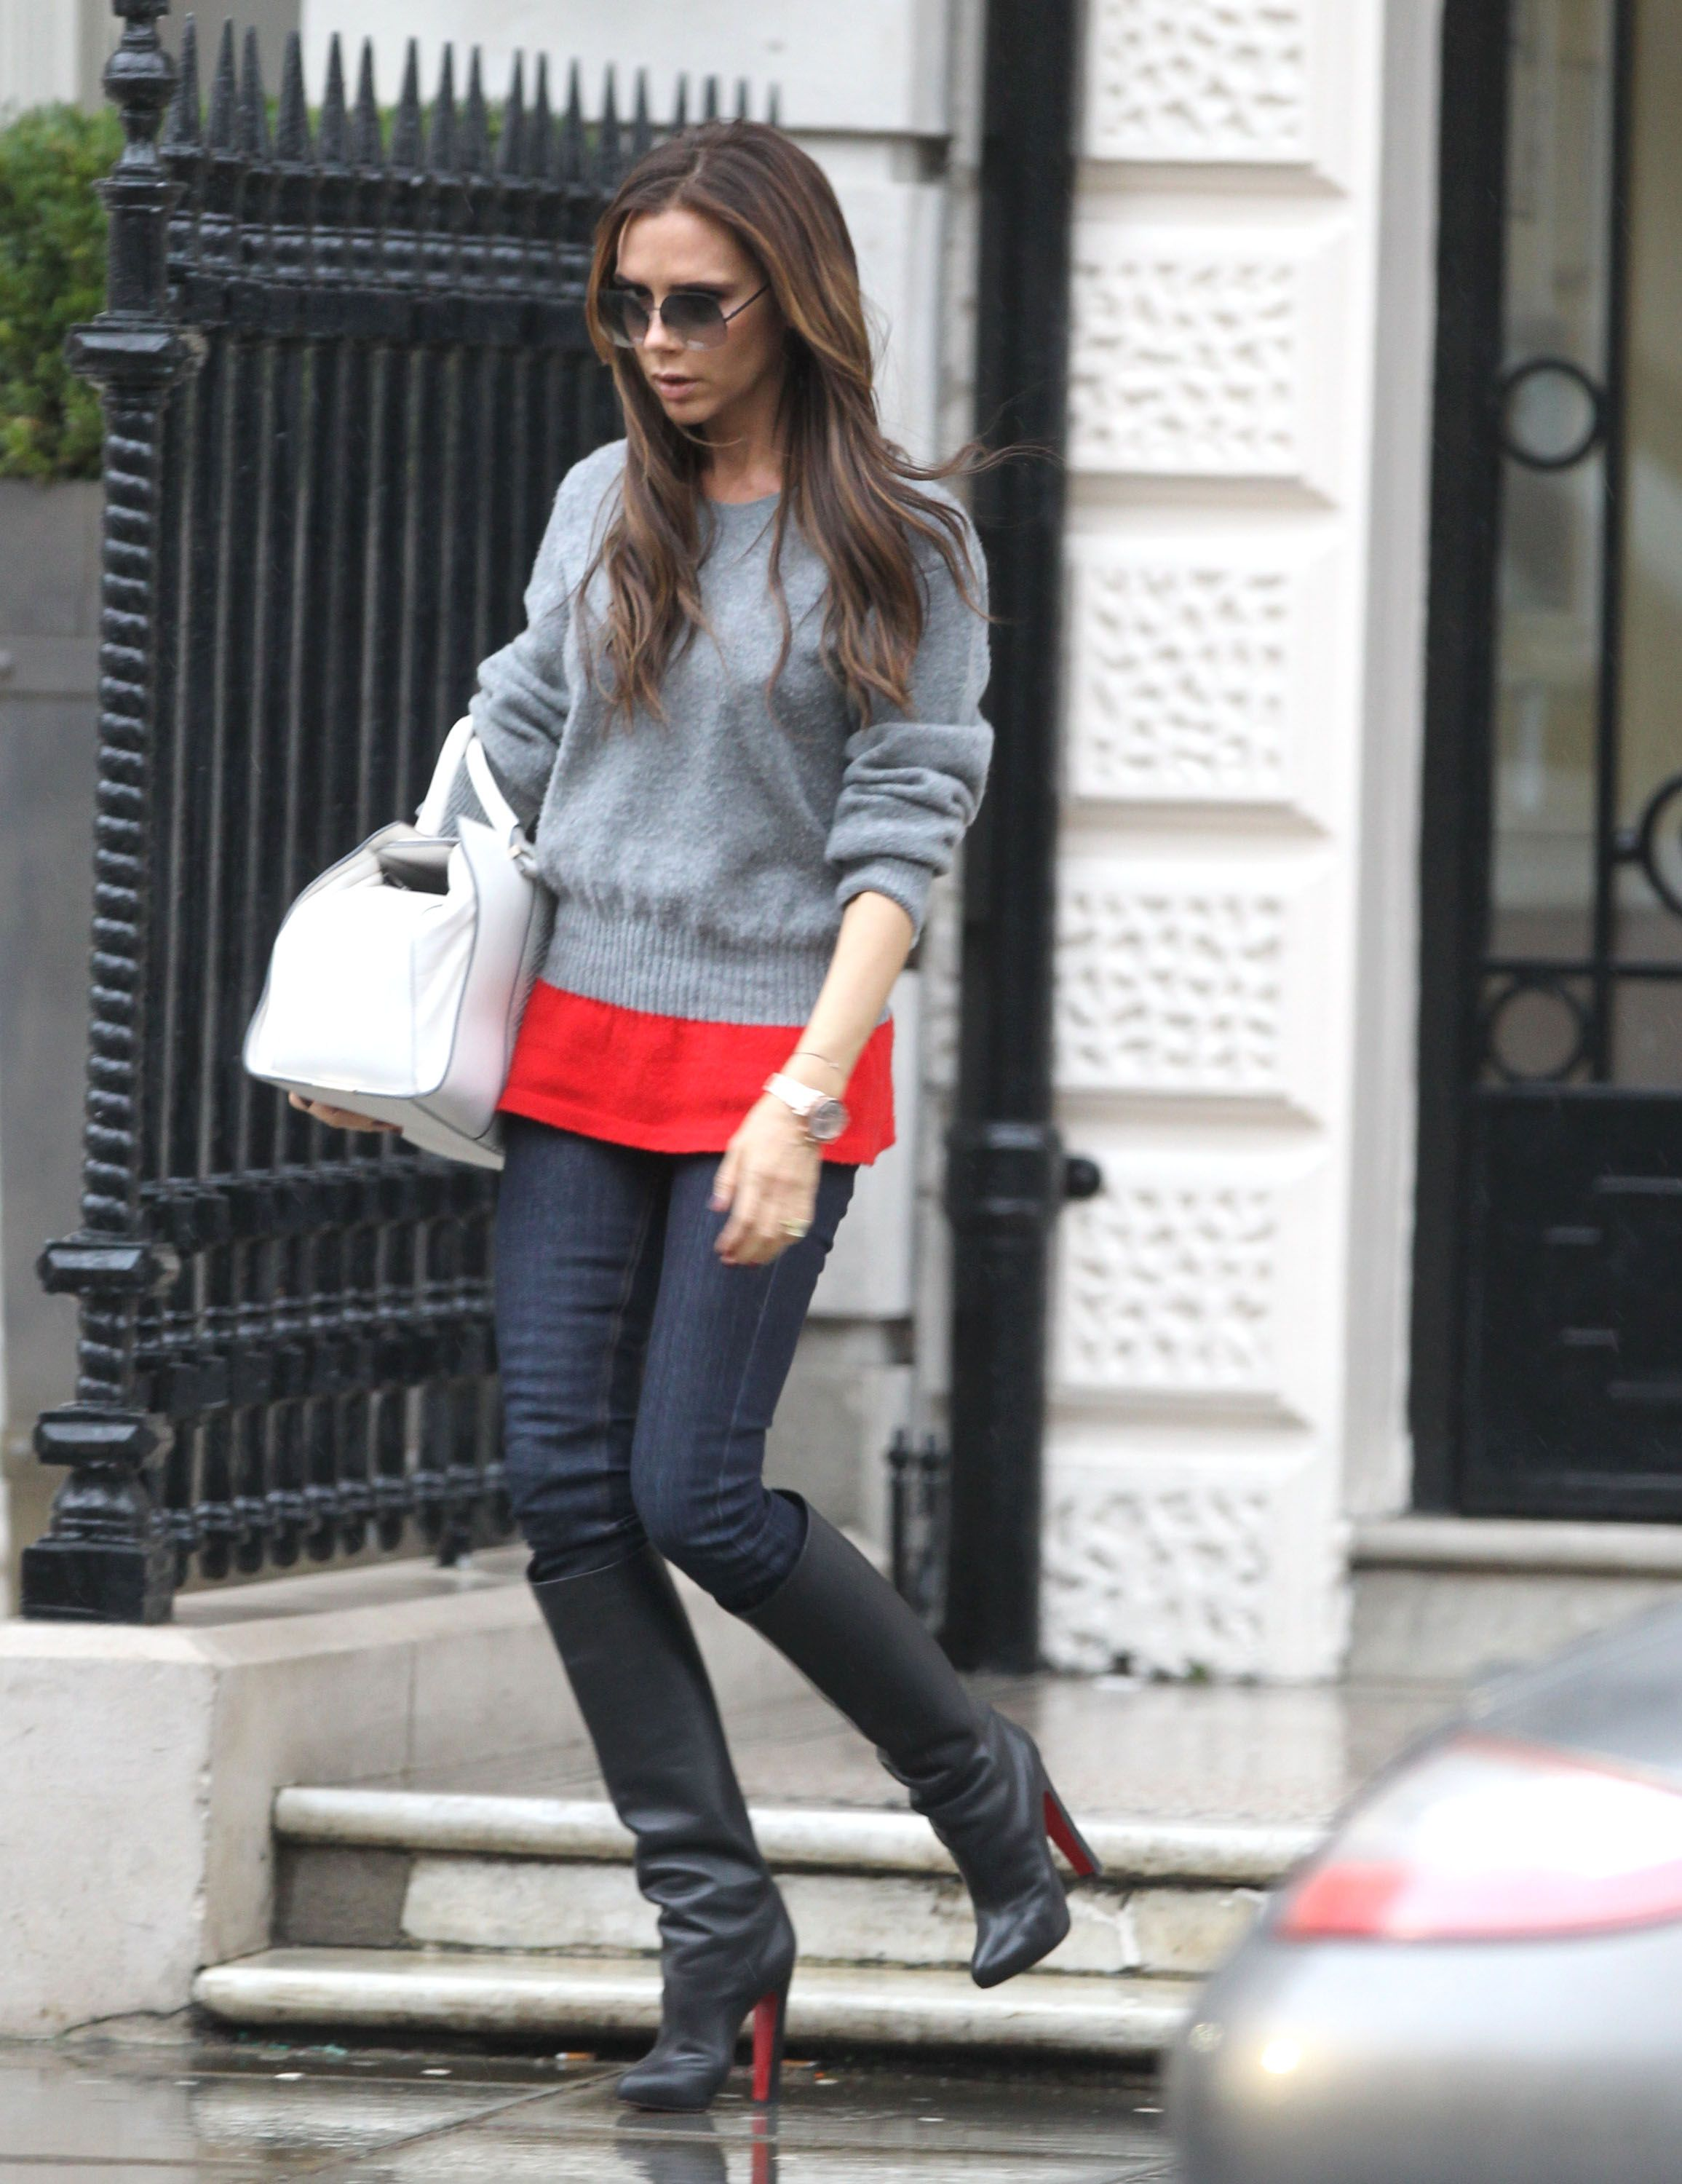 Celebrities in Boots  Victoria Beckham in Christian Louboutin Knee High  Boots 81c41d7d6